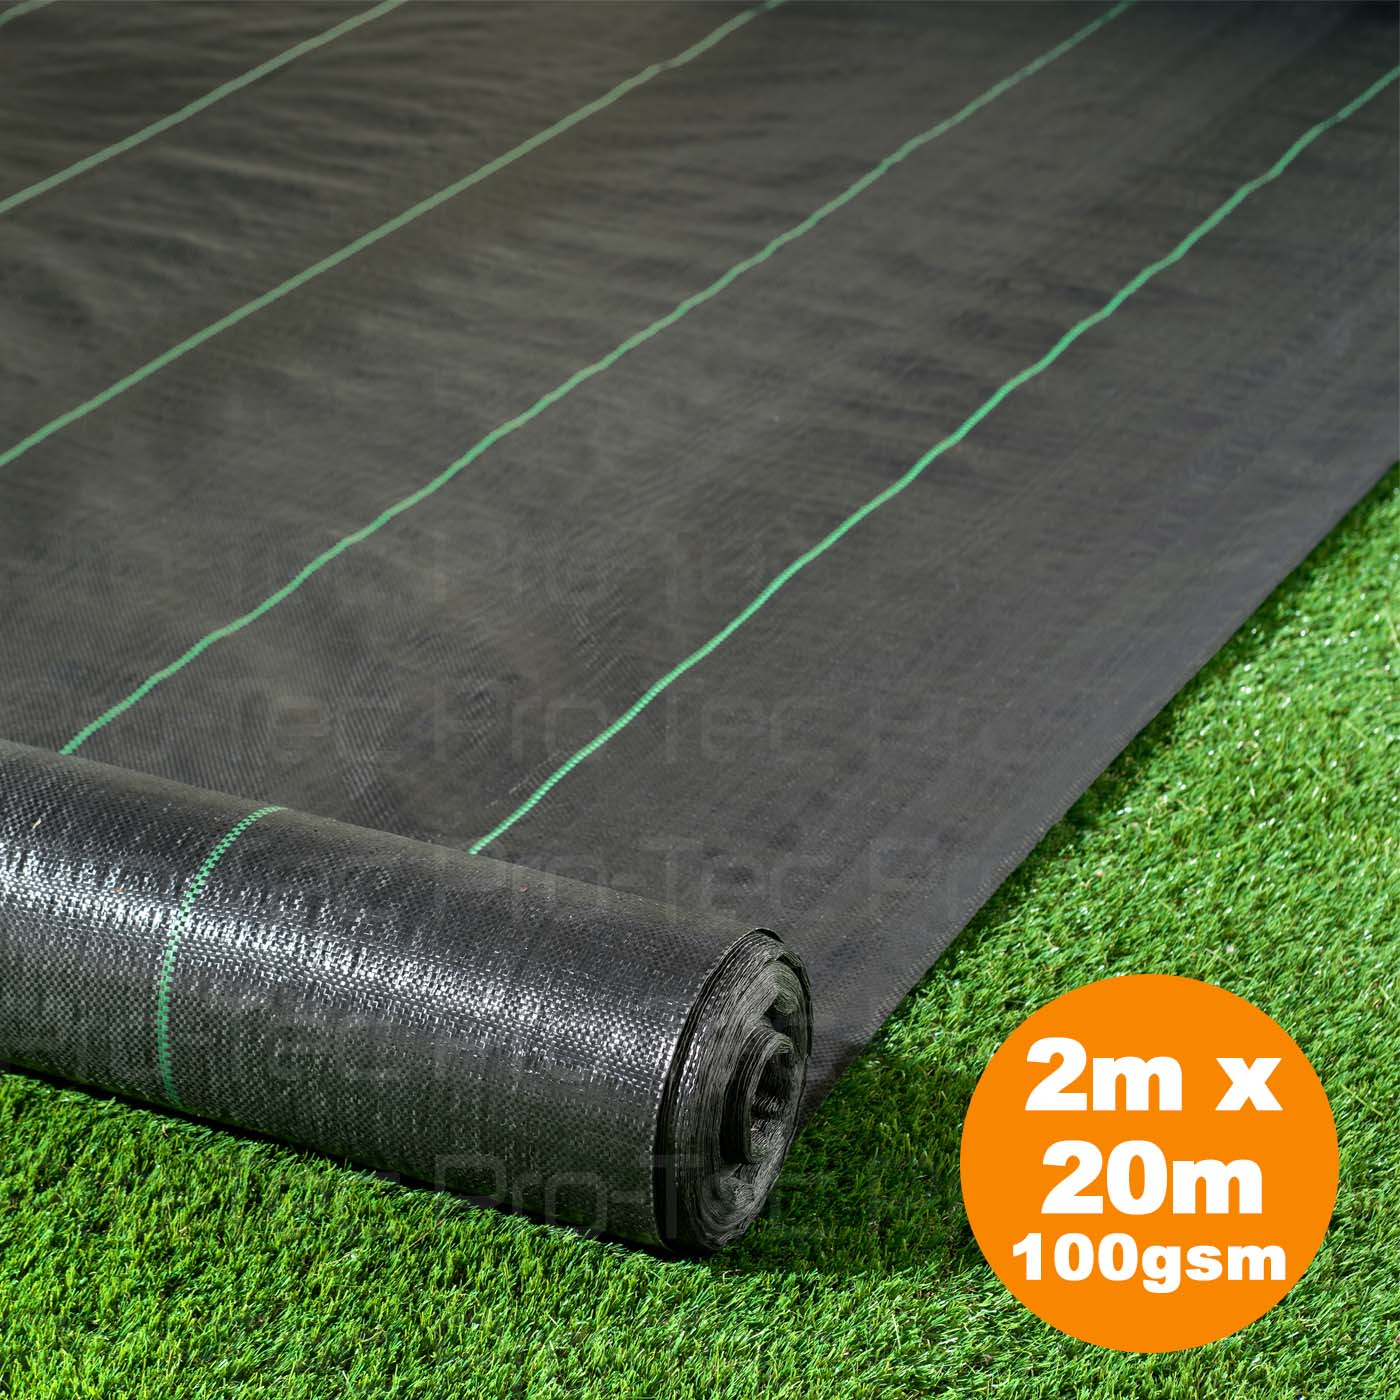 Picutre of 2m x 20m Weed Control Landscape Fabric